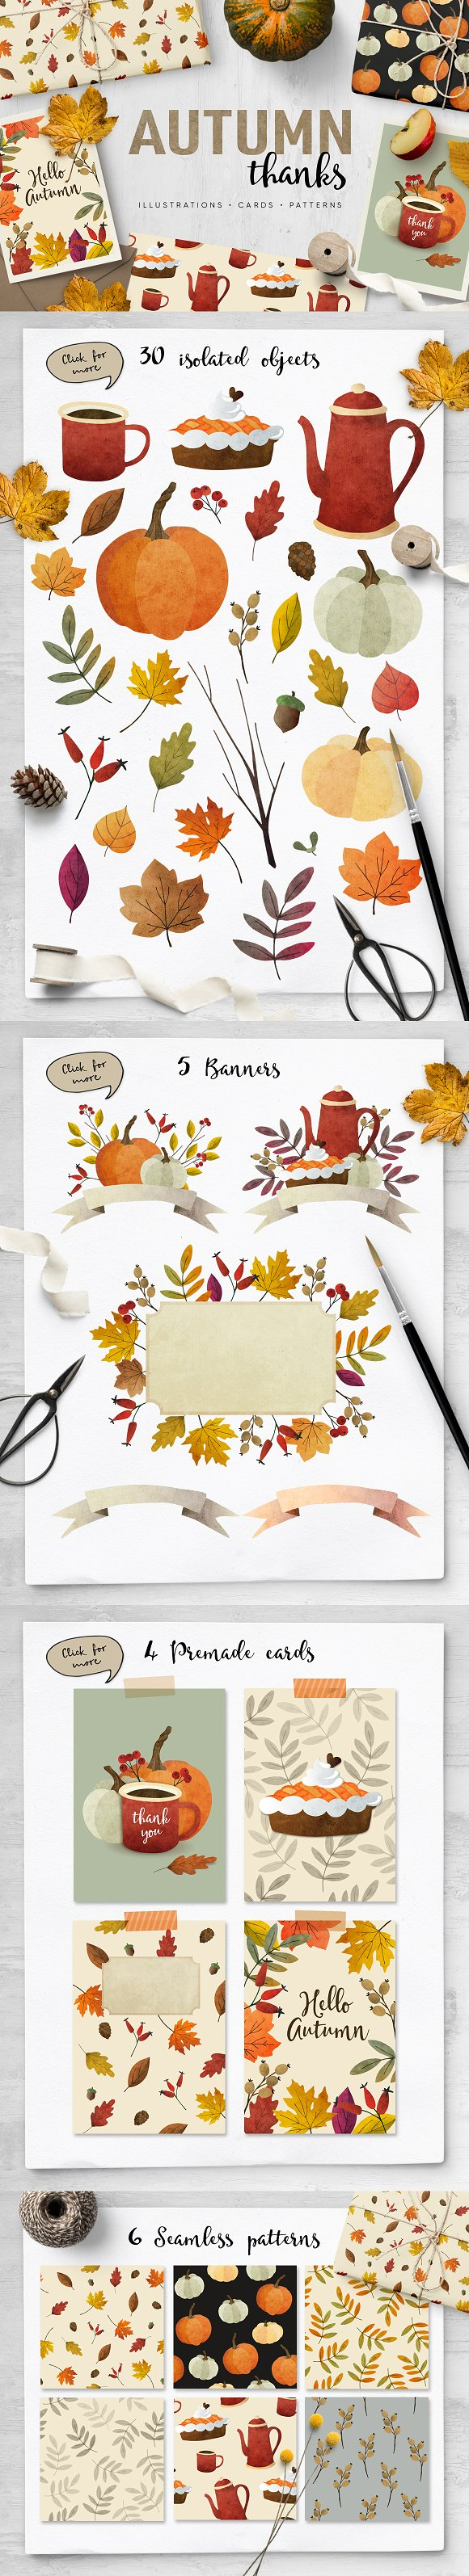 Autumn thanks illustrations, pattern